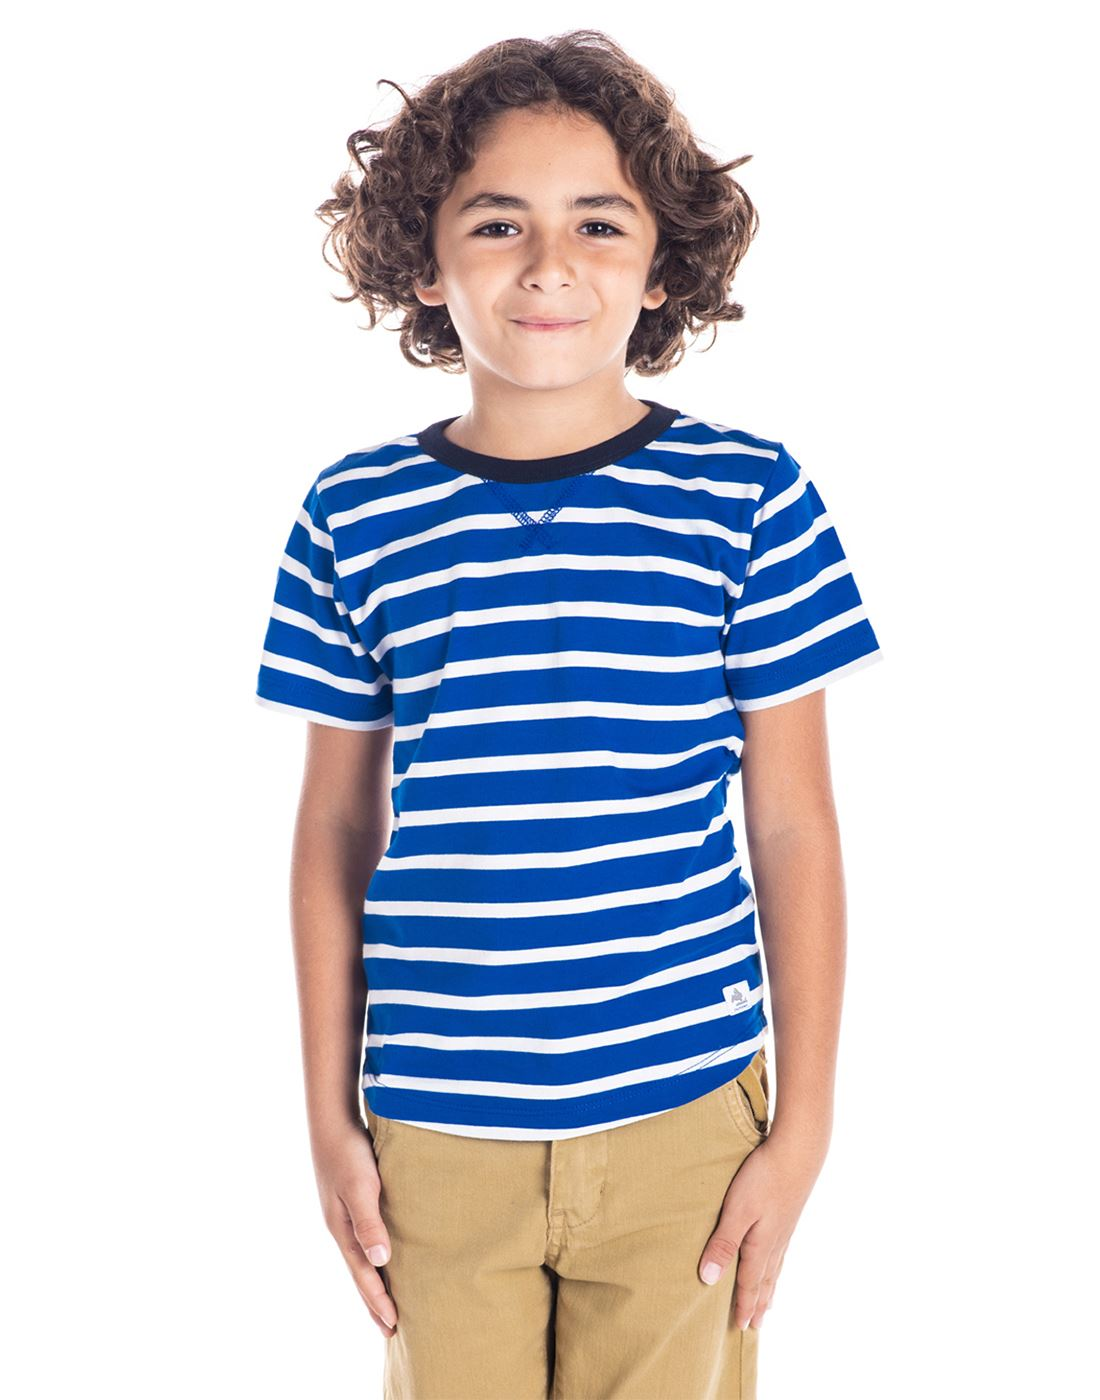 Cherry Crumble California Casual Wear Striped Unisex T-Shirt